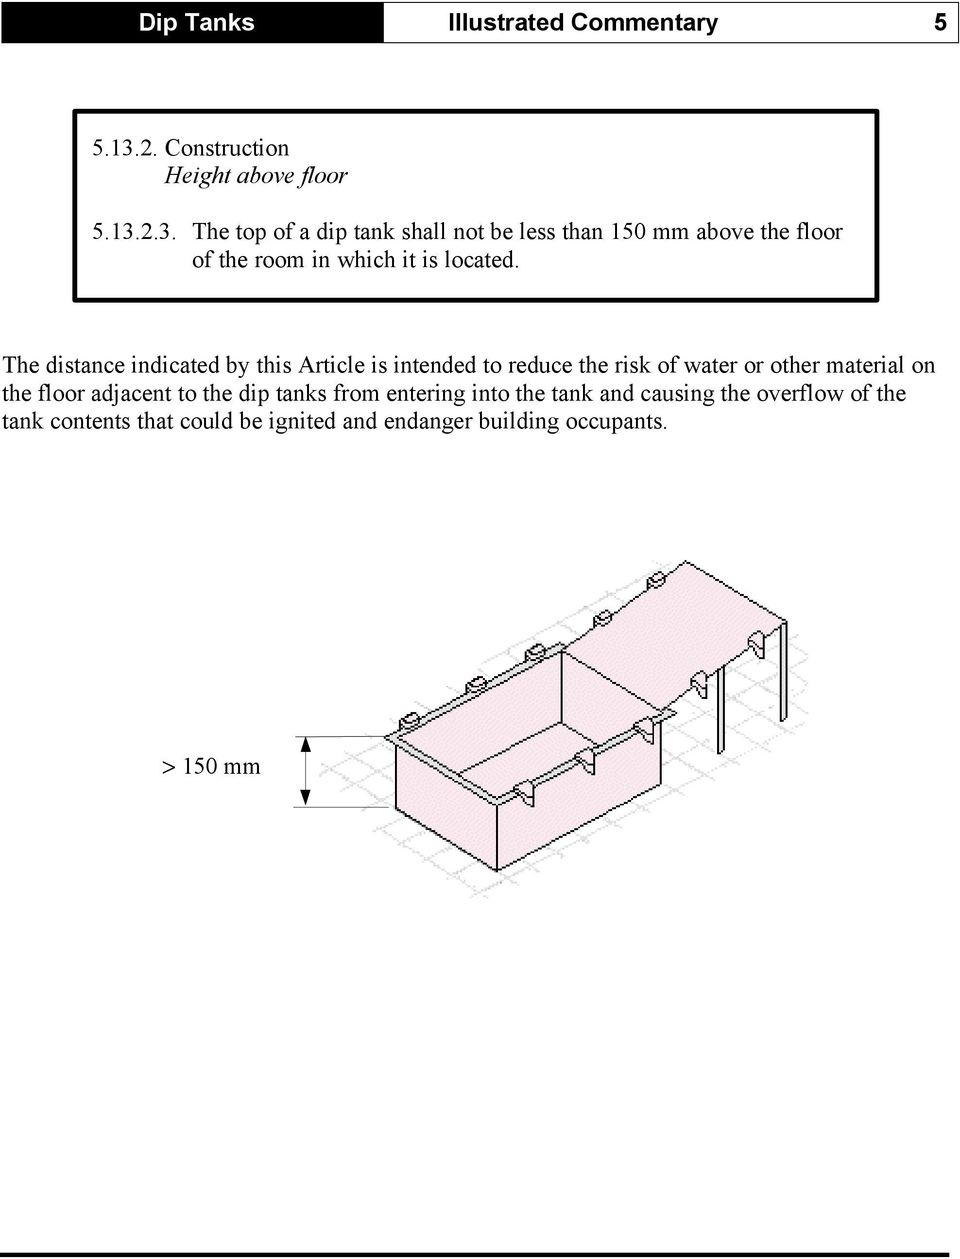 2.3. The top of a dip tank shall not be less than 150 mm above the floor of the room in which it is located.